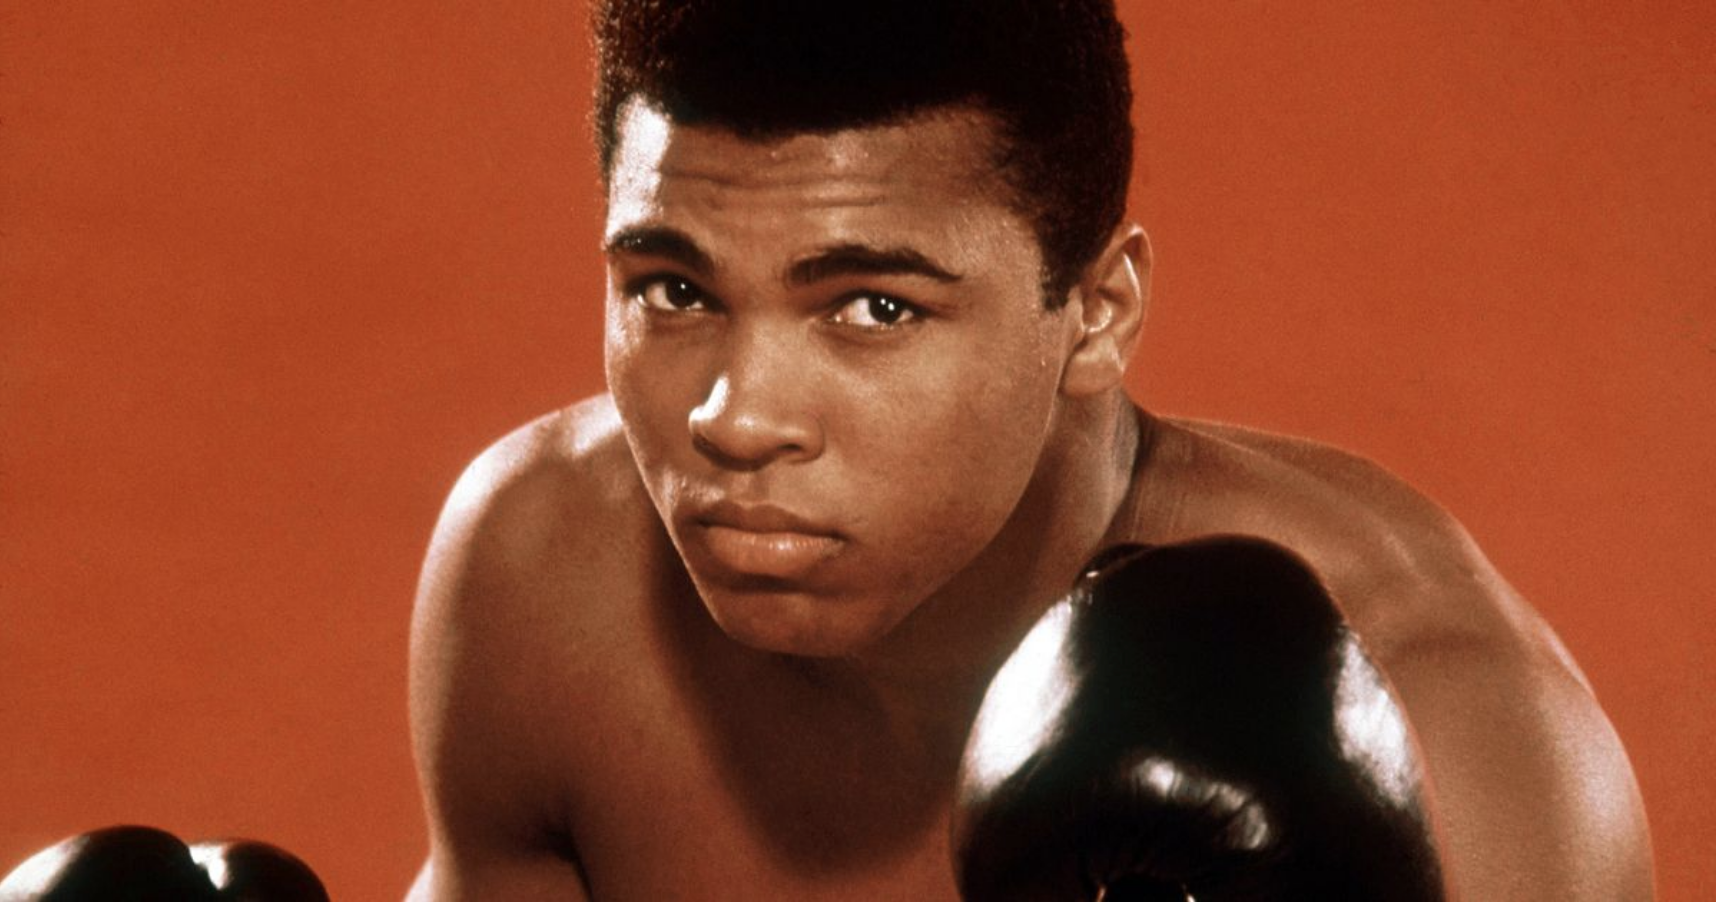 The 1 greatest lesson i ever learned from muhammad ali